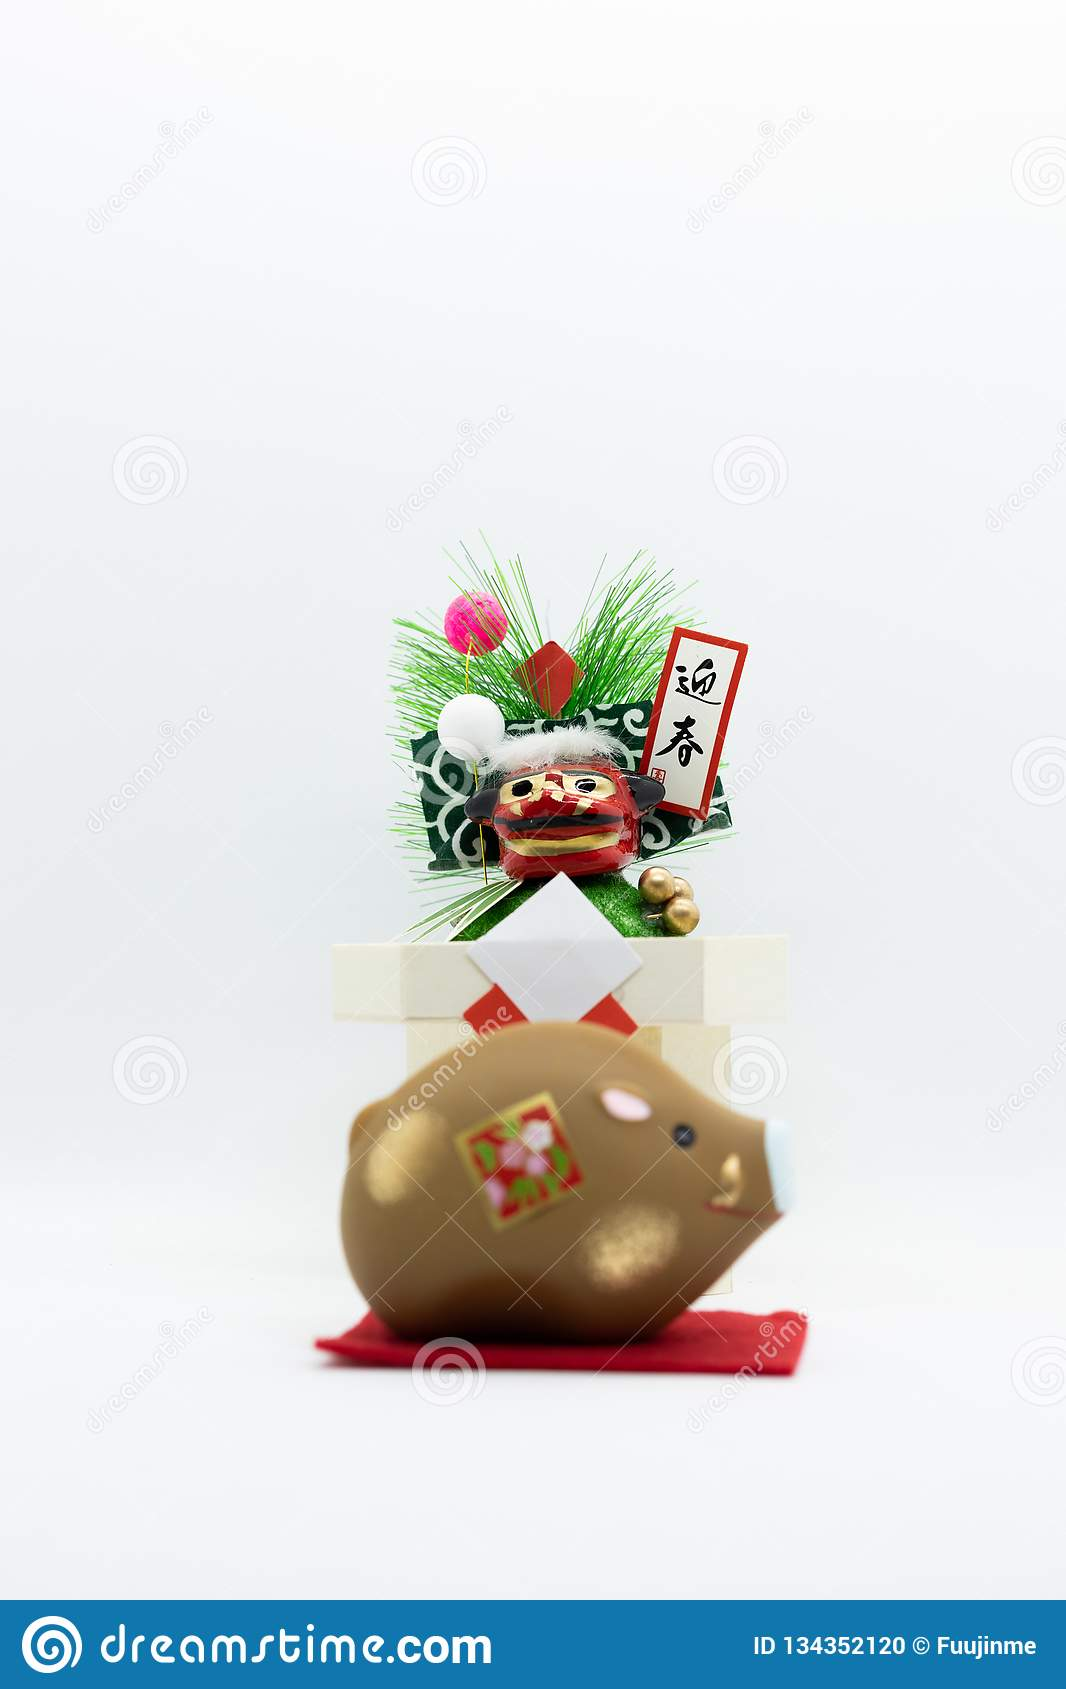 Japanese New Year Wild Boar Object Stock Photo - Image of ...